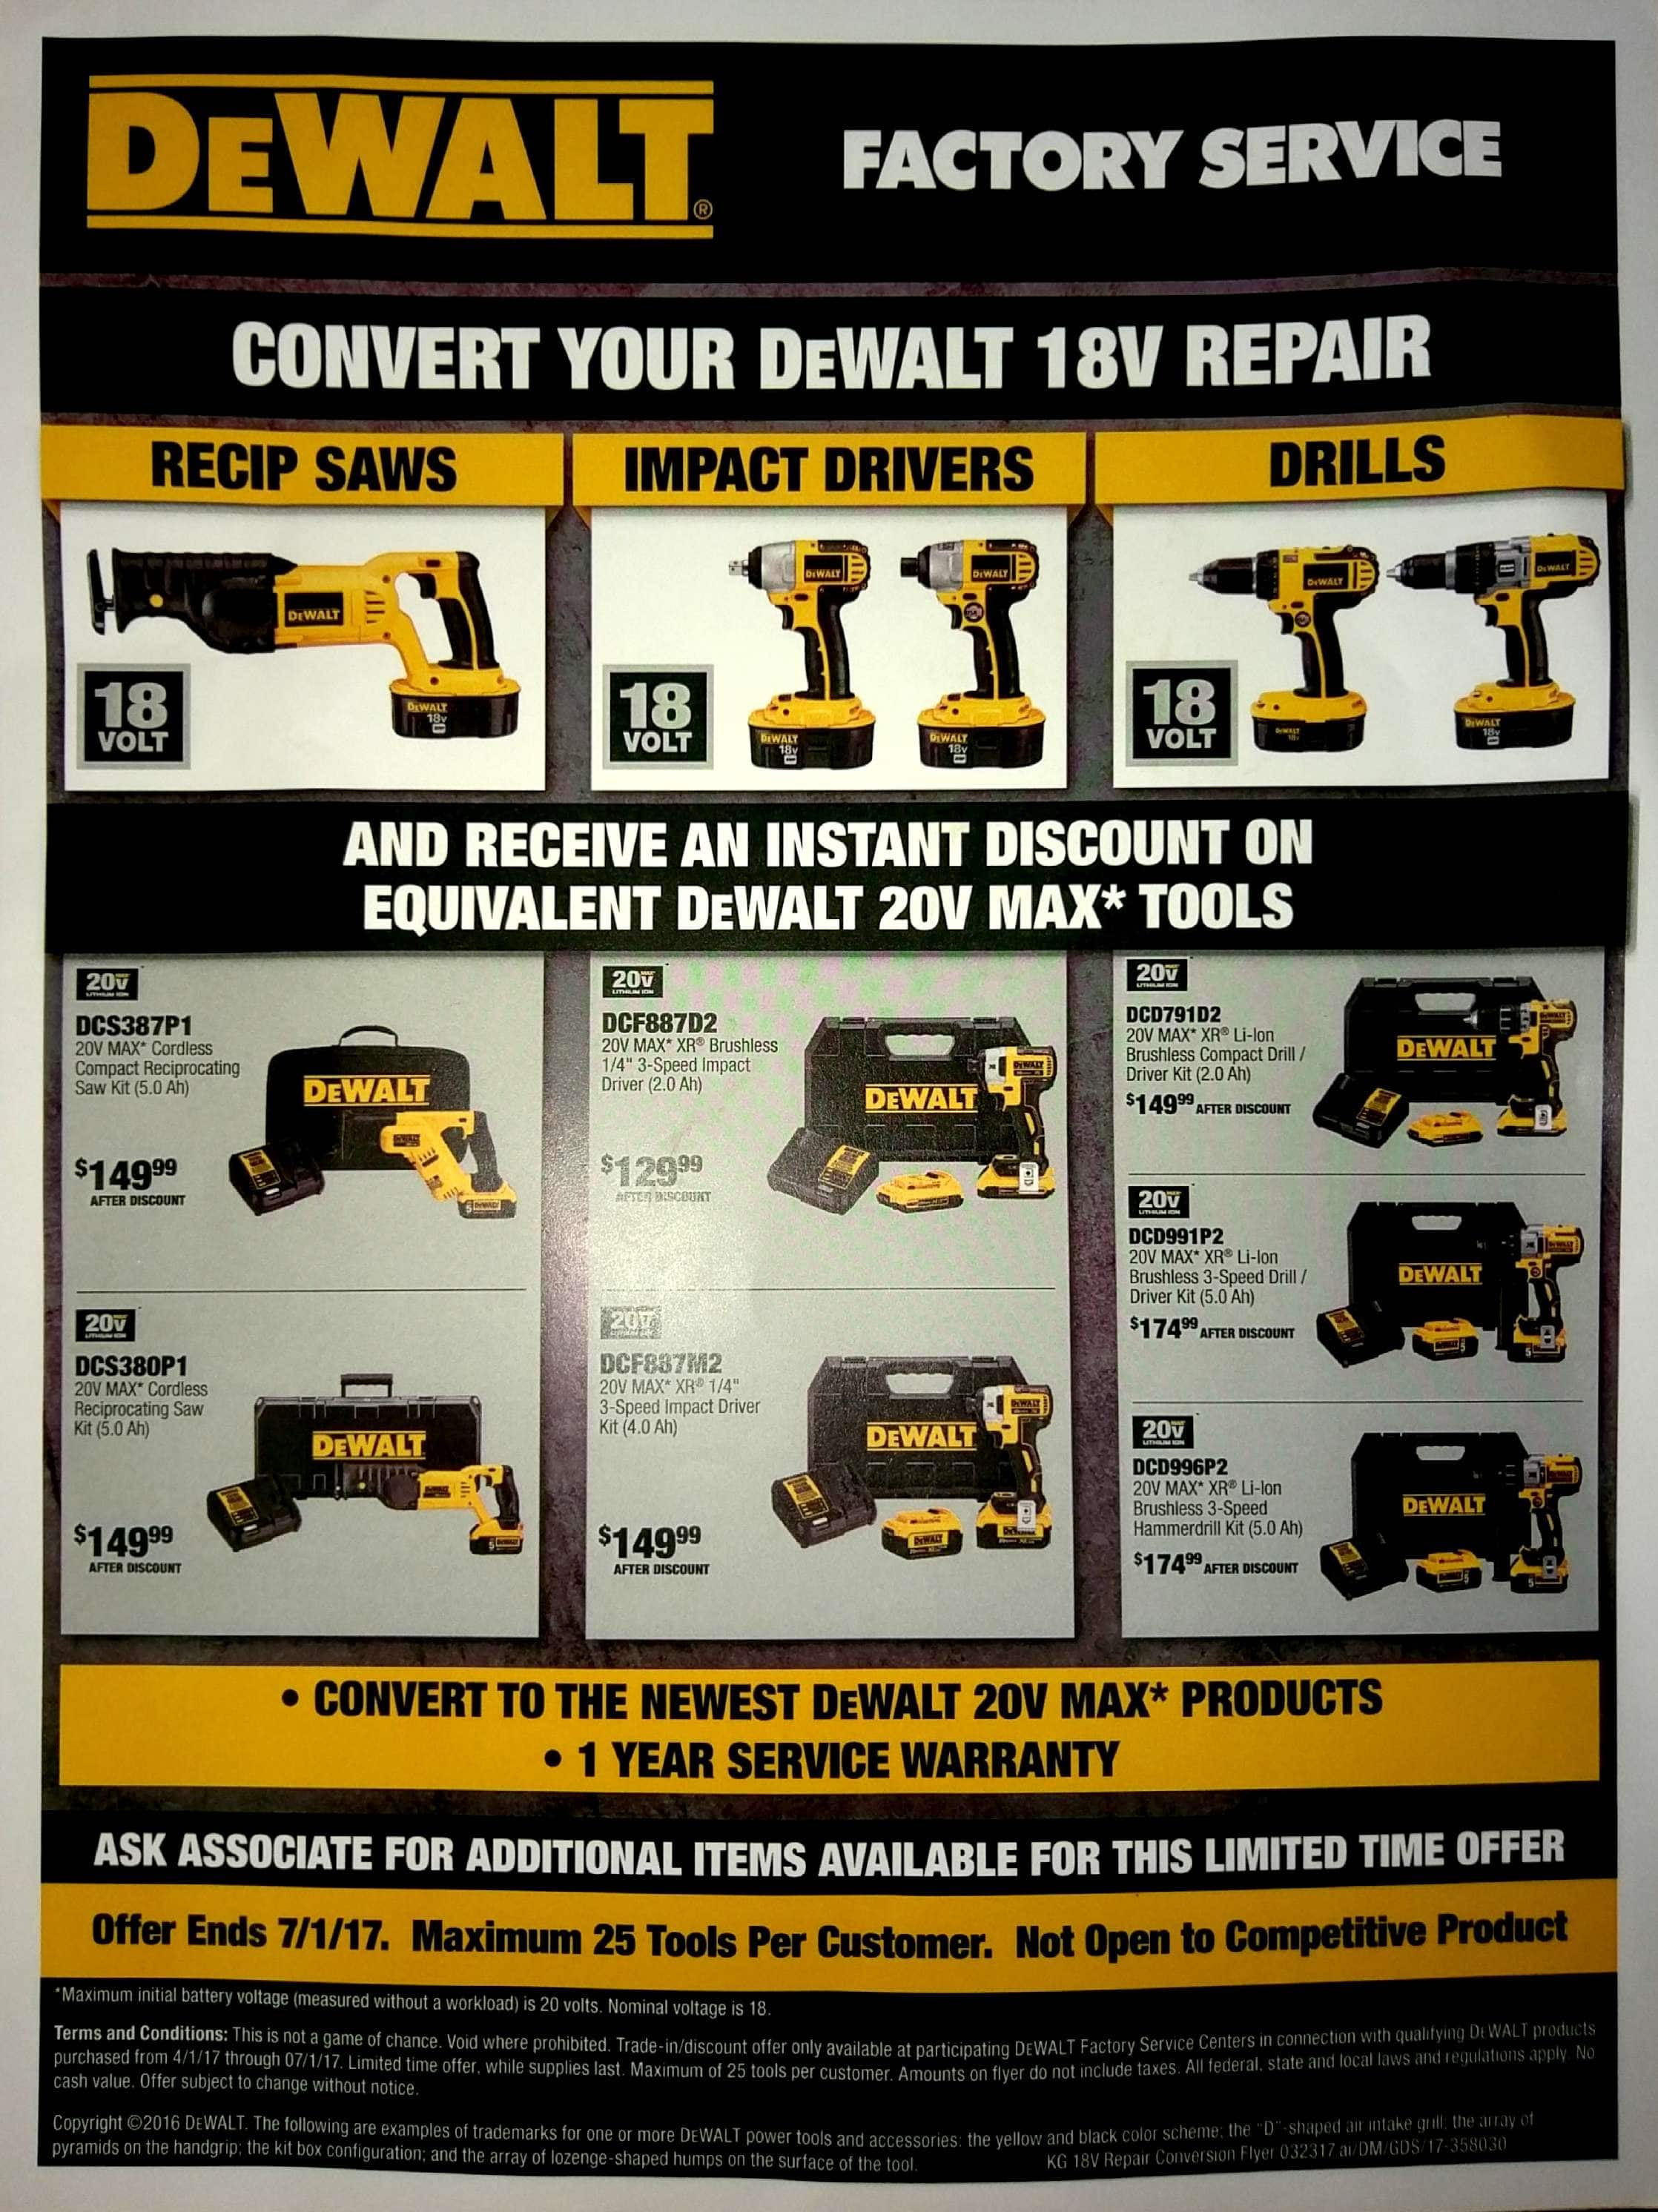 Dewalt 20v brushless hammer drill kit 2 batteries and charger for $174.99 with trade in @ dewalt  svc center